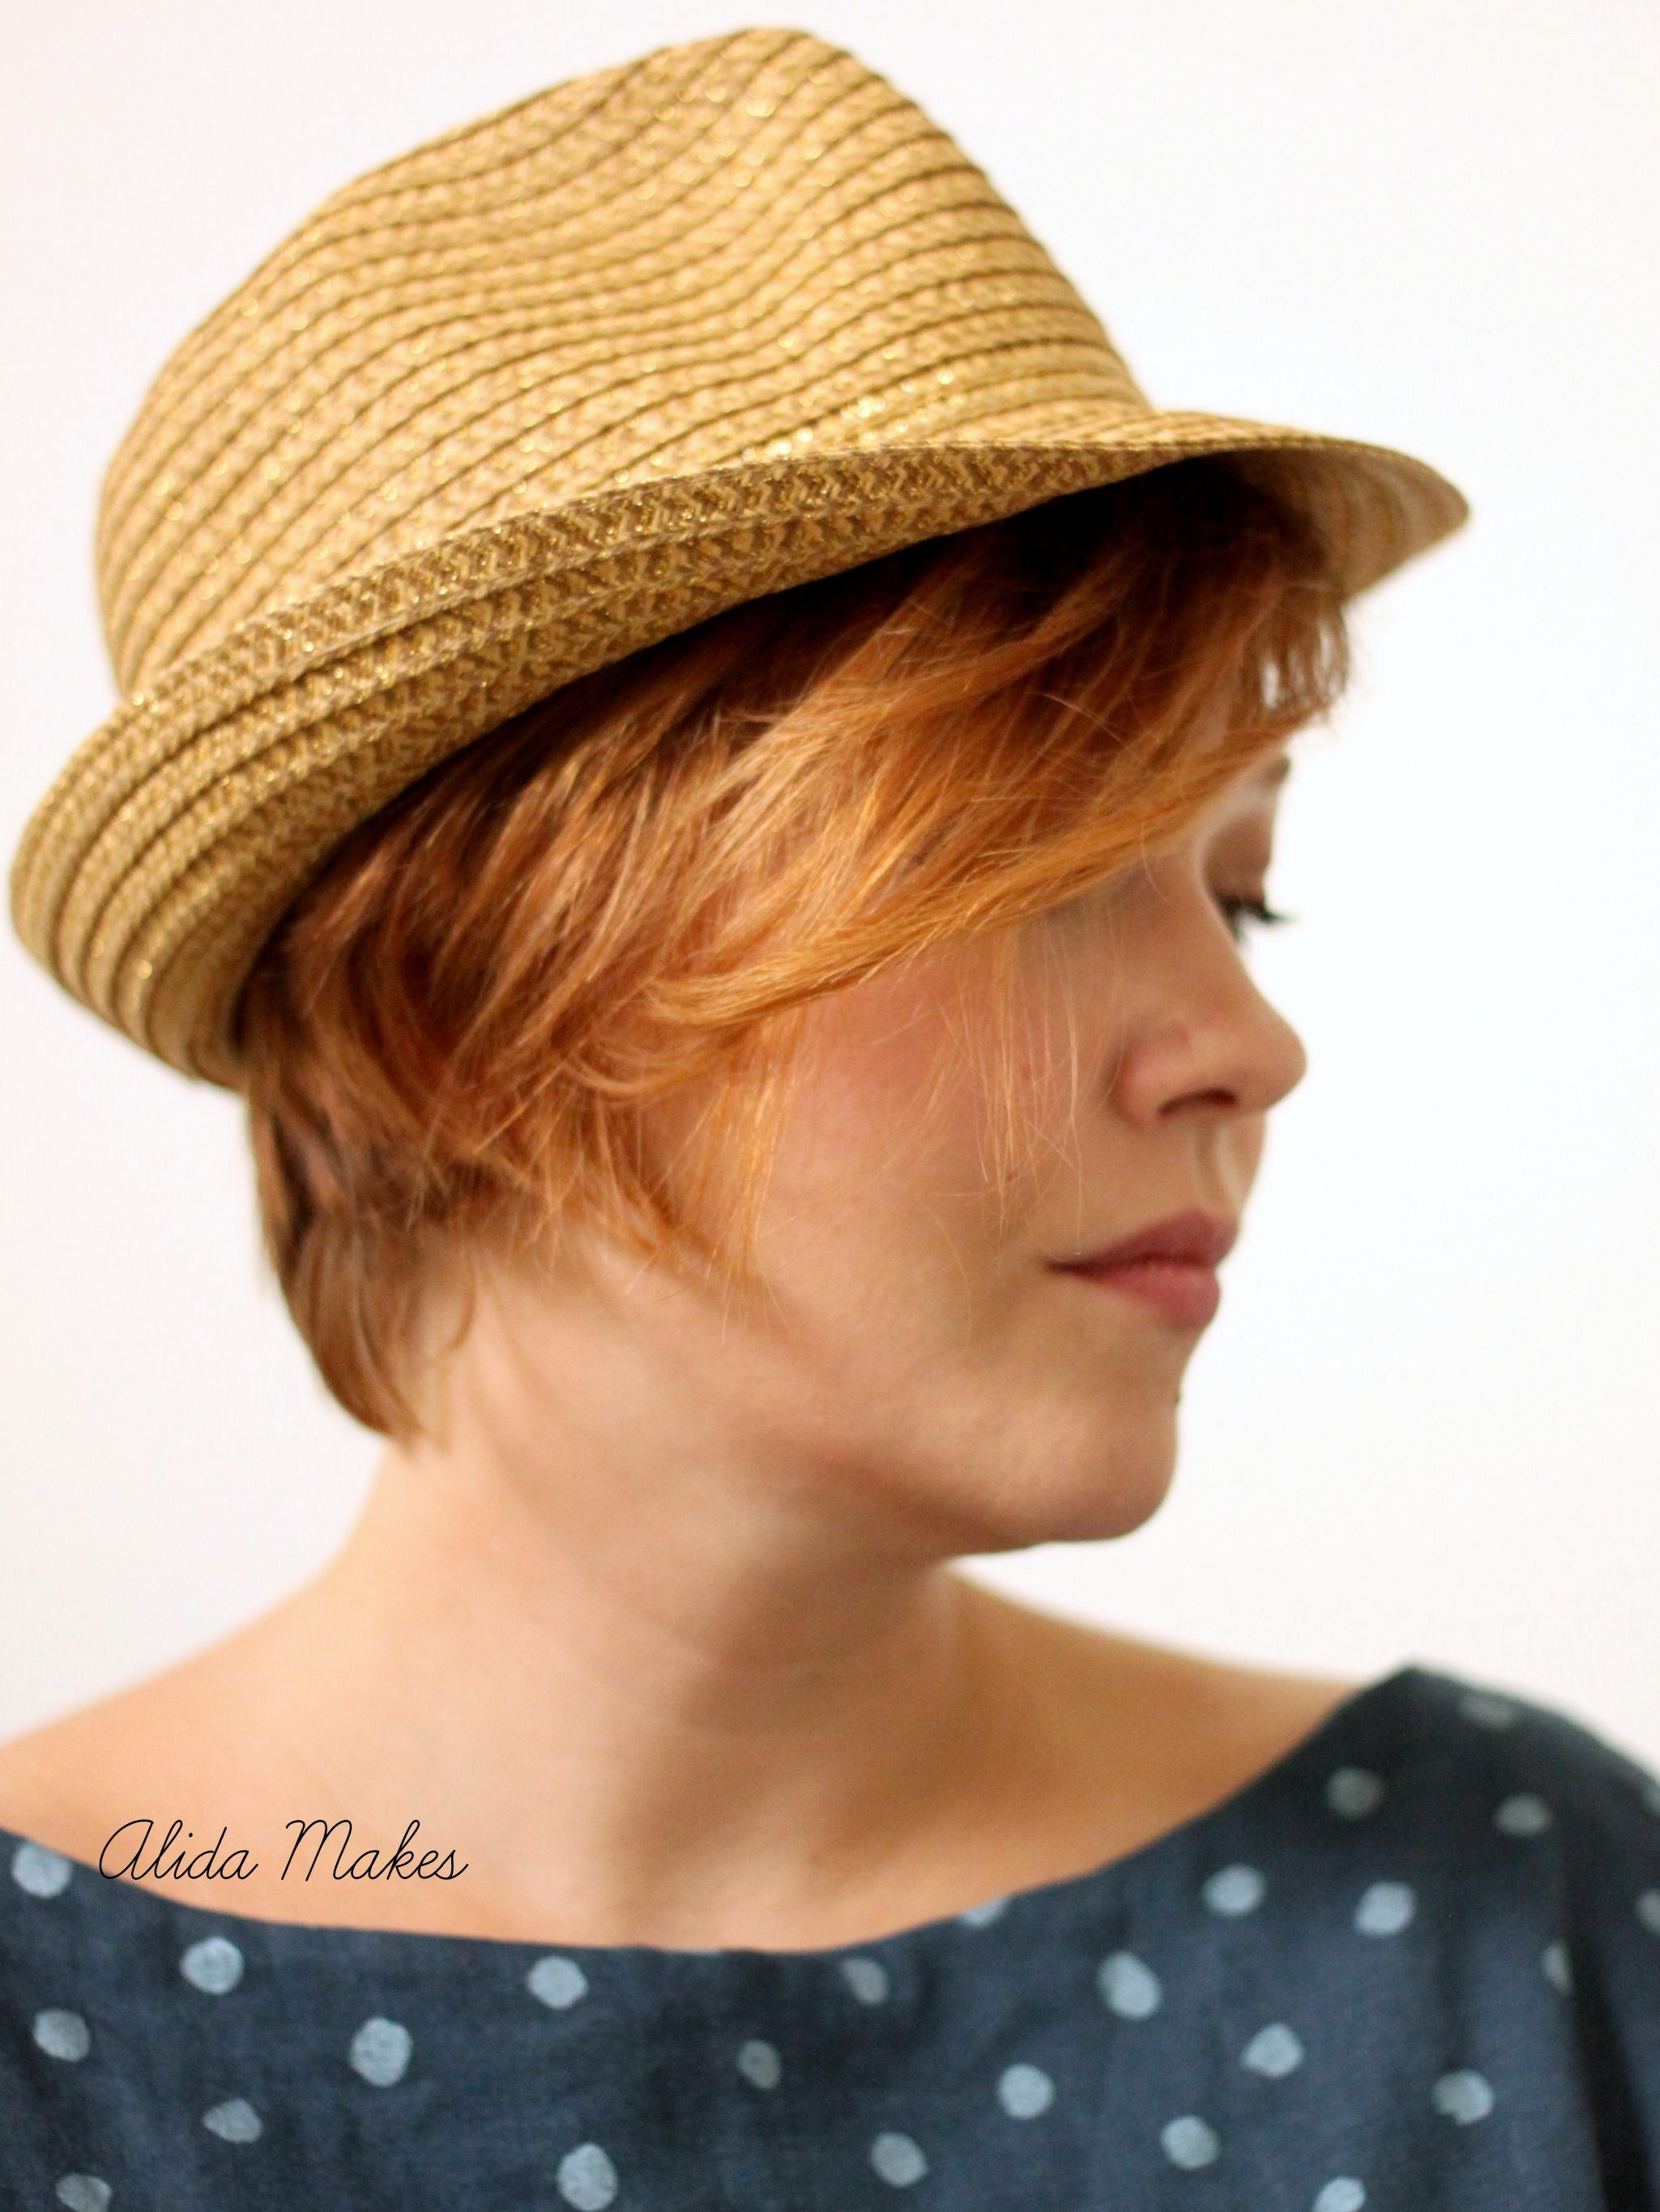 6 Ways To Style A Fedora Short Hair Styles Hair Hats